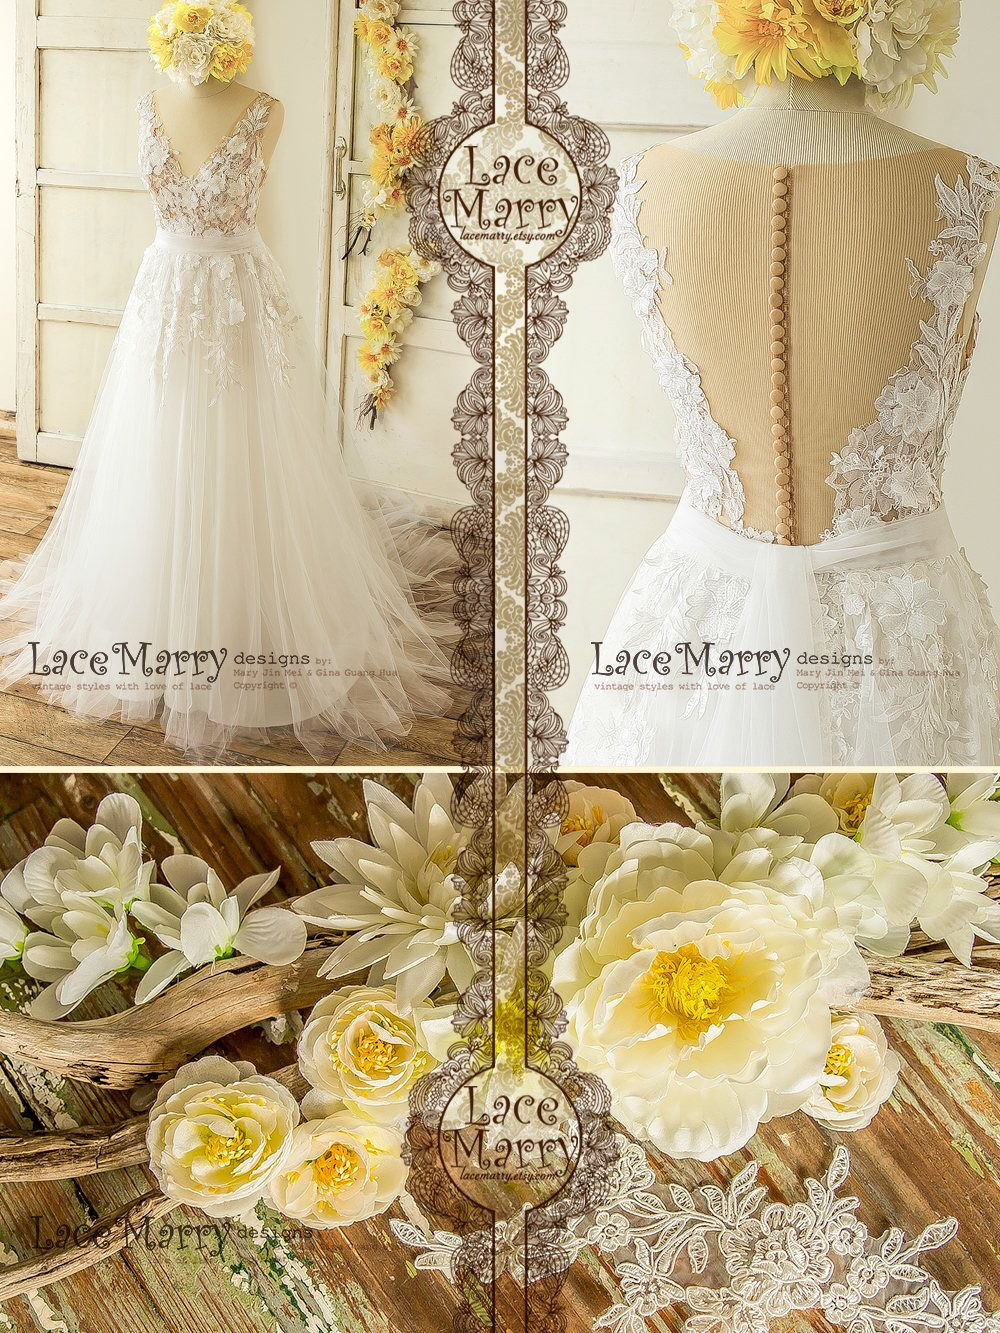 D lace boho wedding dress with sheer nude top in vcut shape back